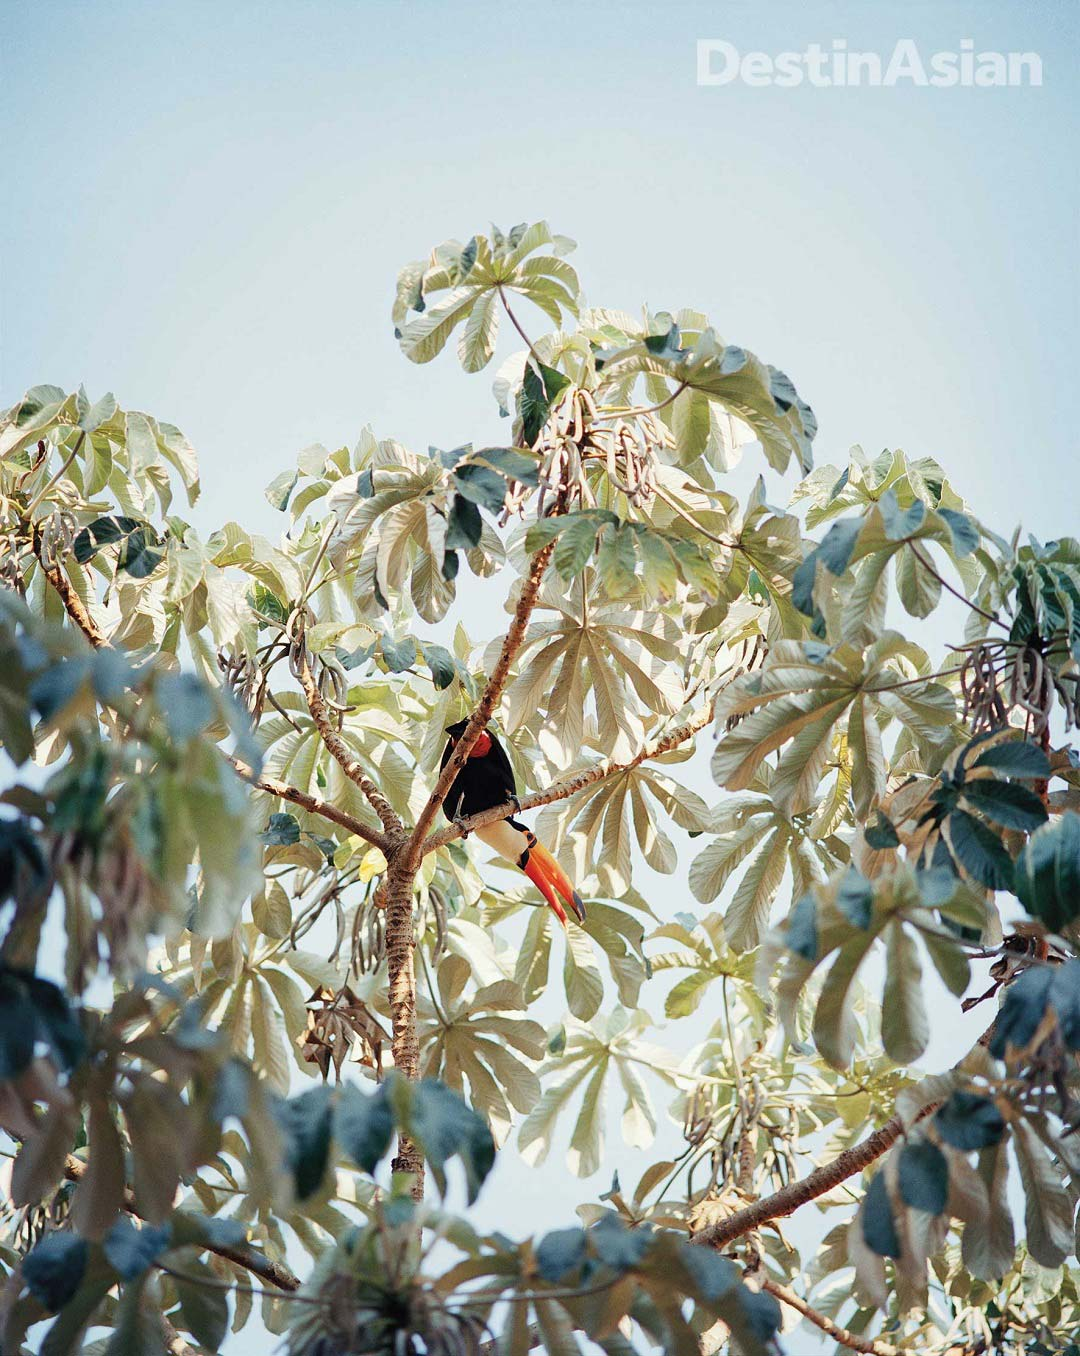 The Pantanal's abundant birdlife includes the toco toucan.